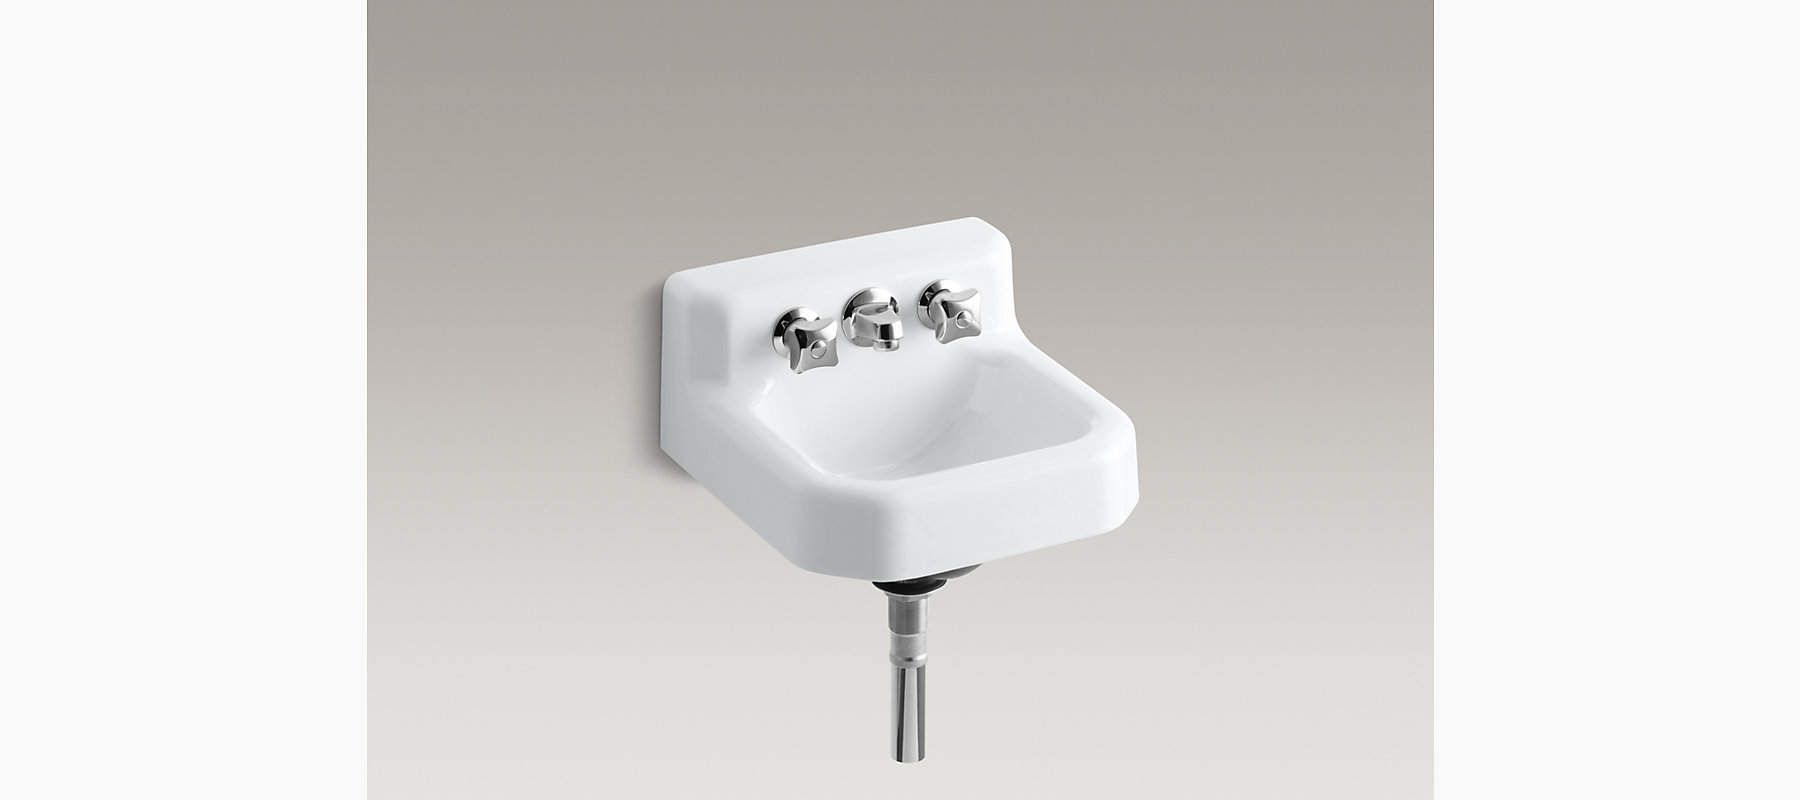 Trailer wall mounted commercial bathroom sink with factory - Discontinued kohler bathroom sink faucets ...